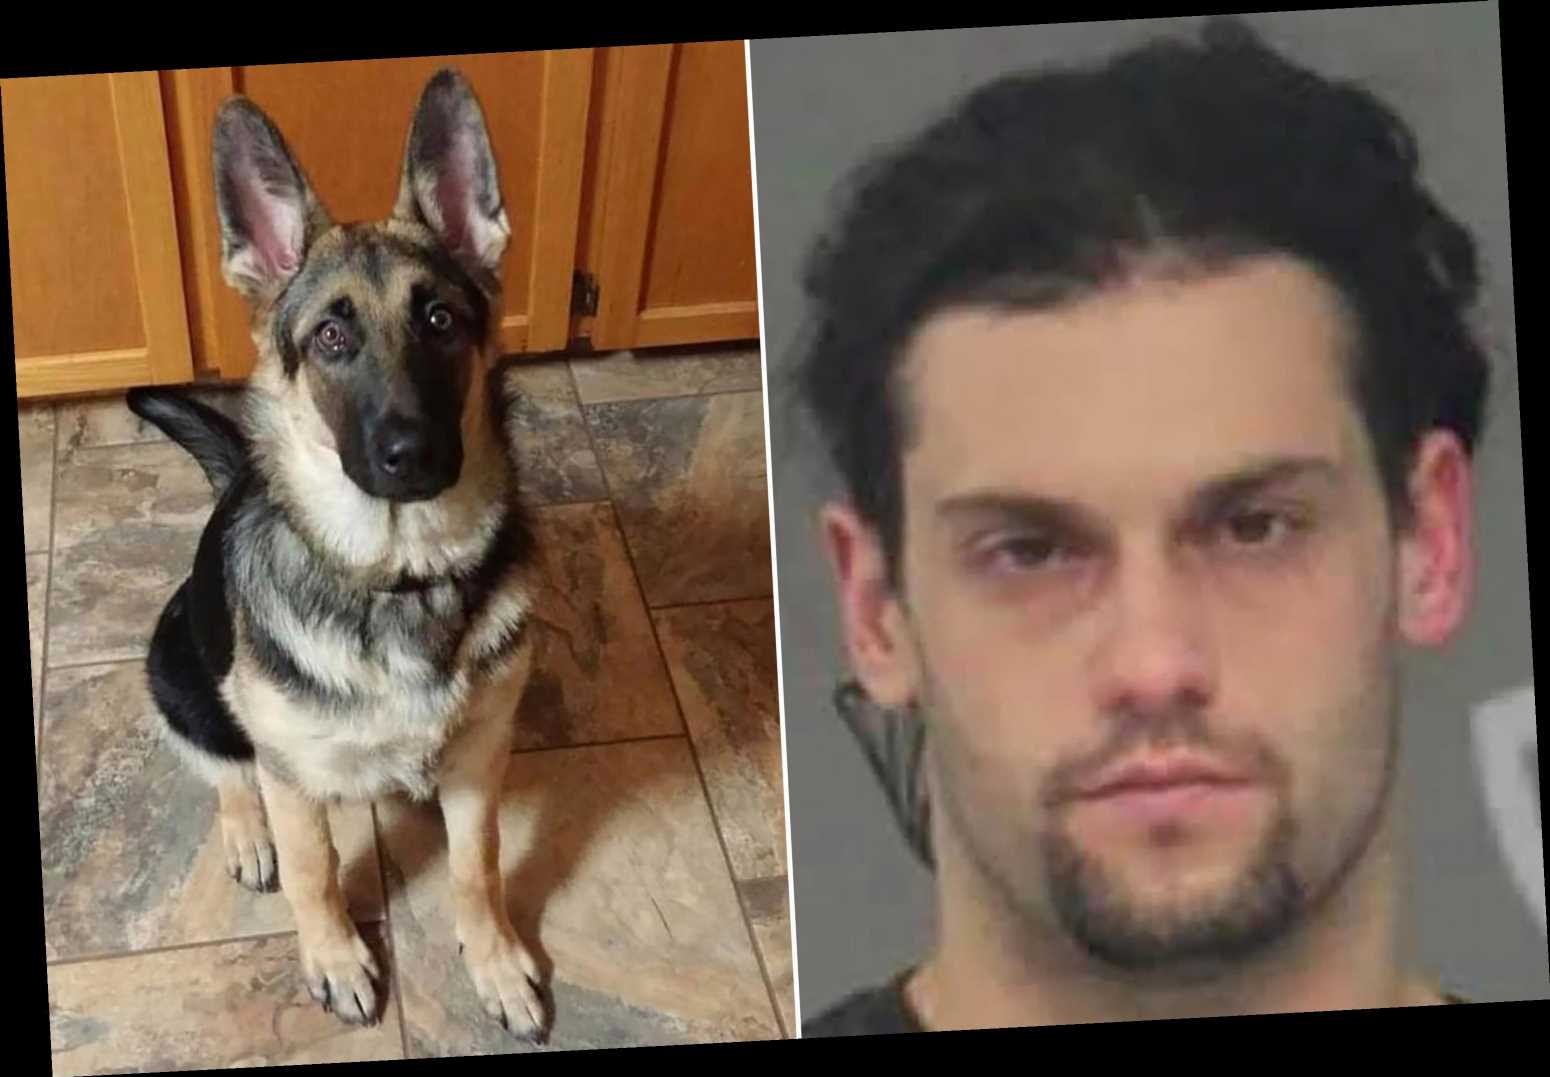 Upstate New York man accused of killing puppy, throwing it in the trash